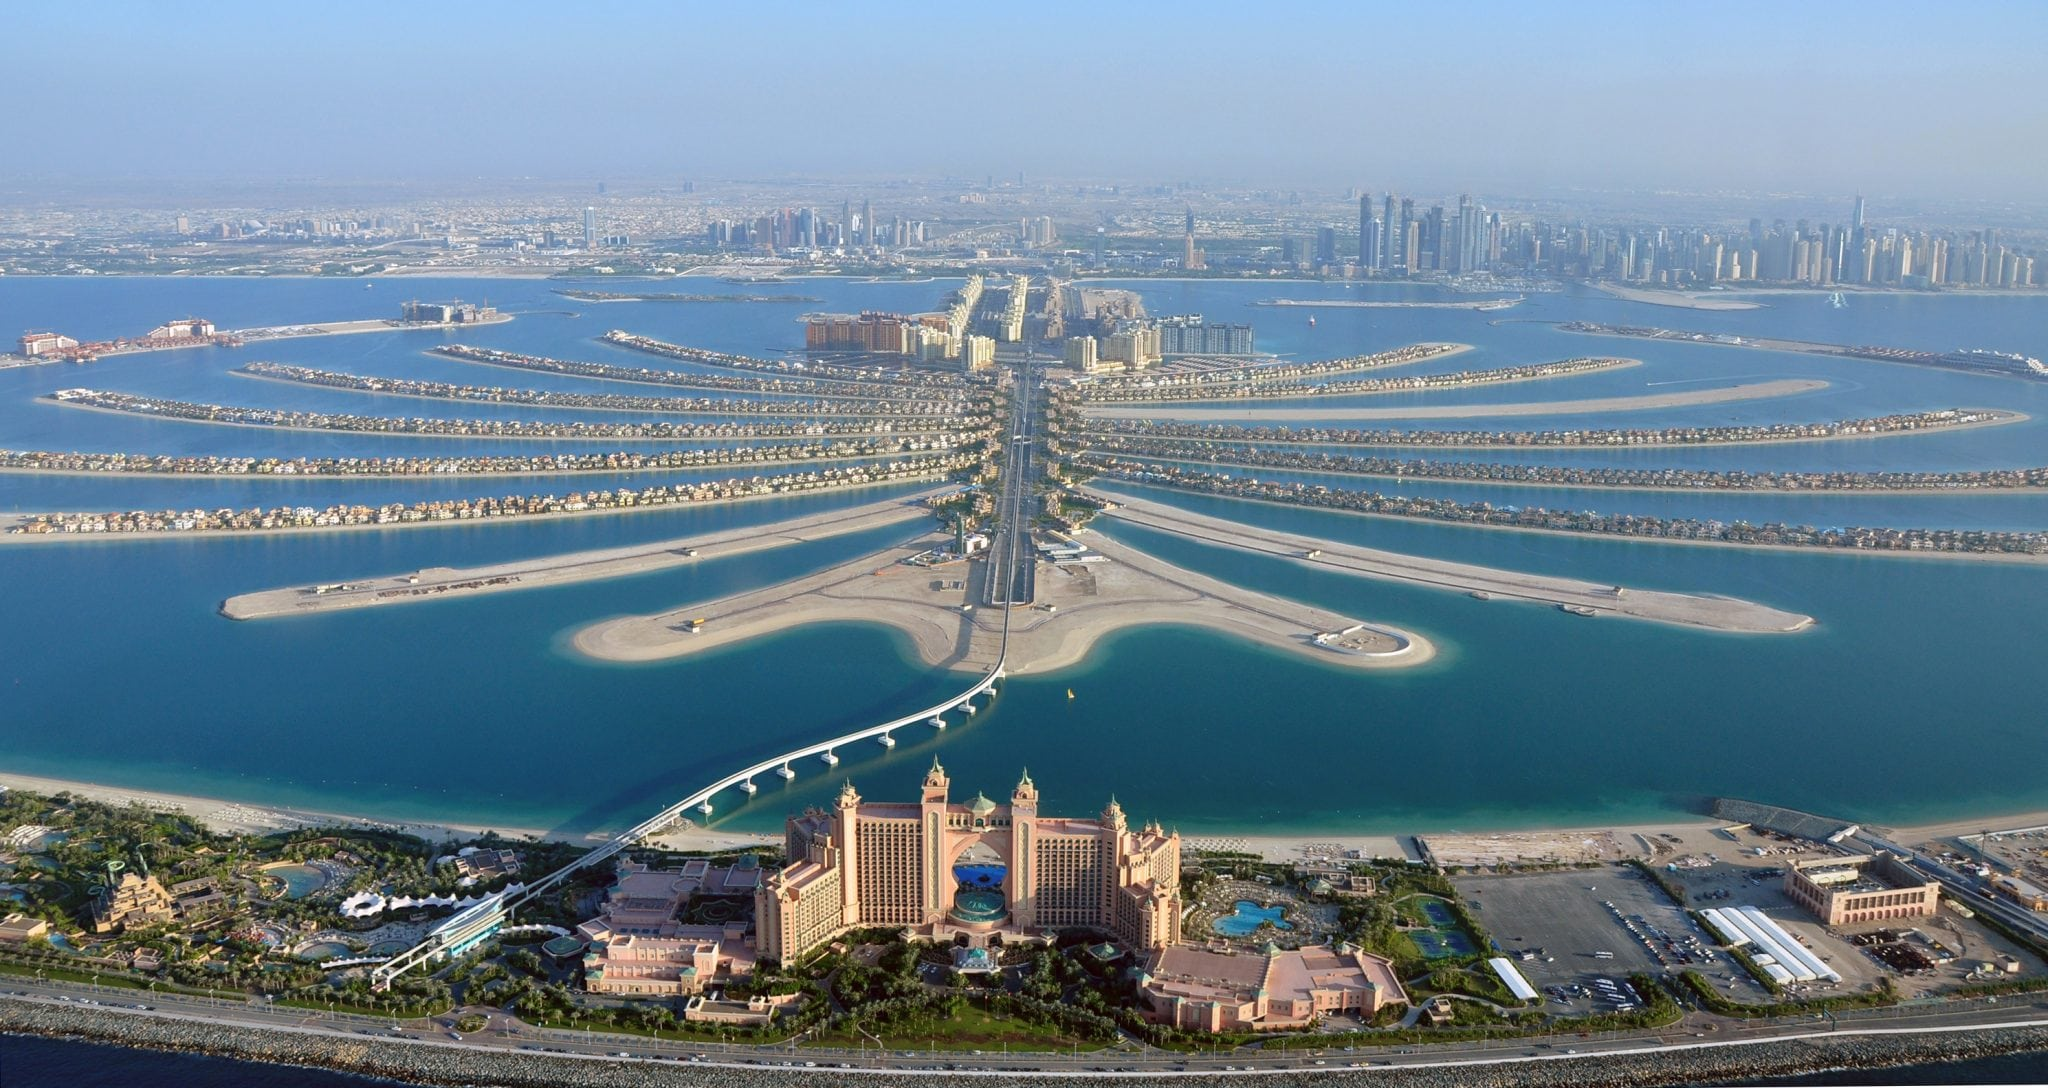 Atlantis Hotel Dubai S Atlantis Hotel Is In The Market For Loan To Refinance Its